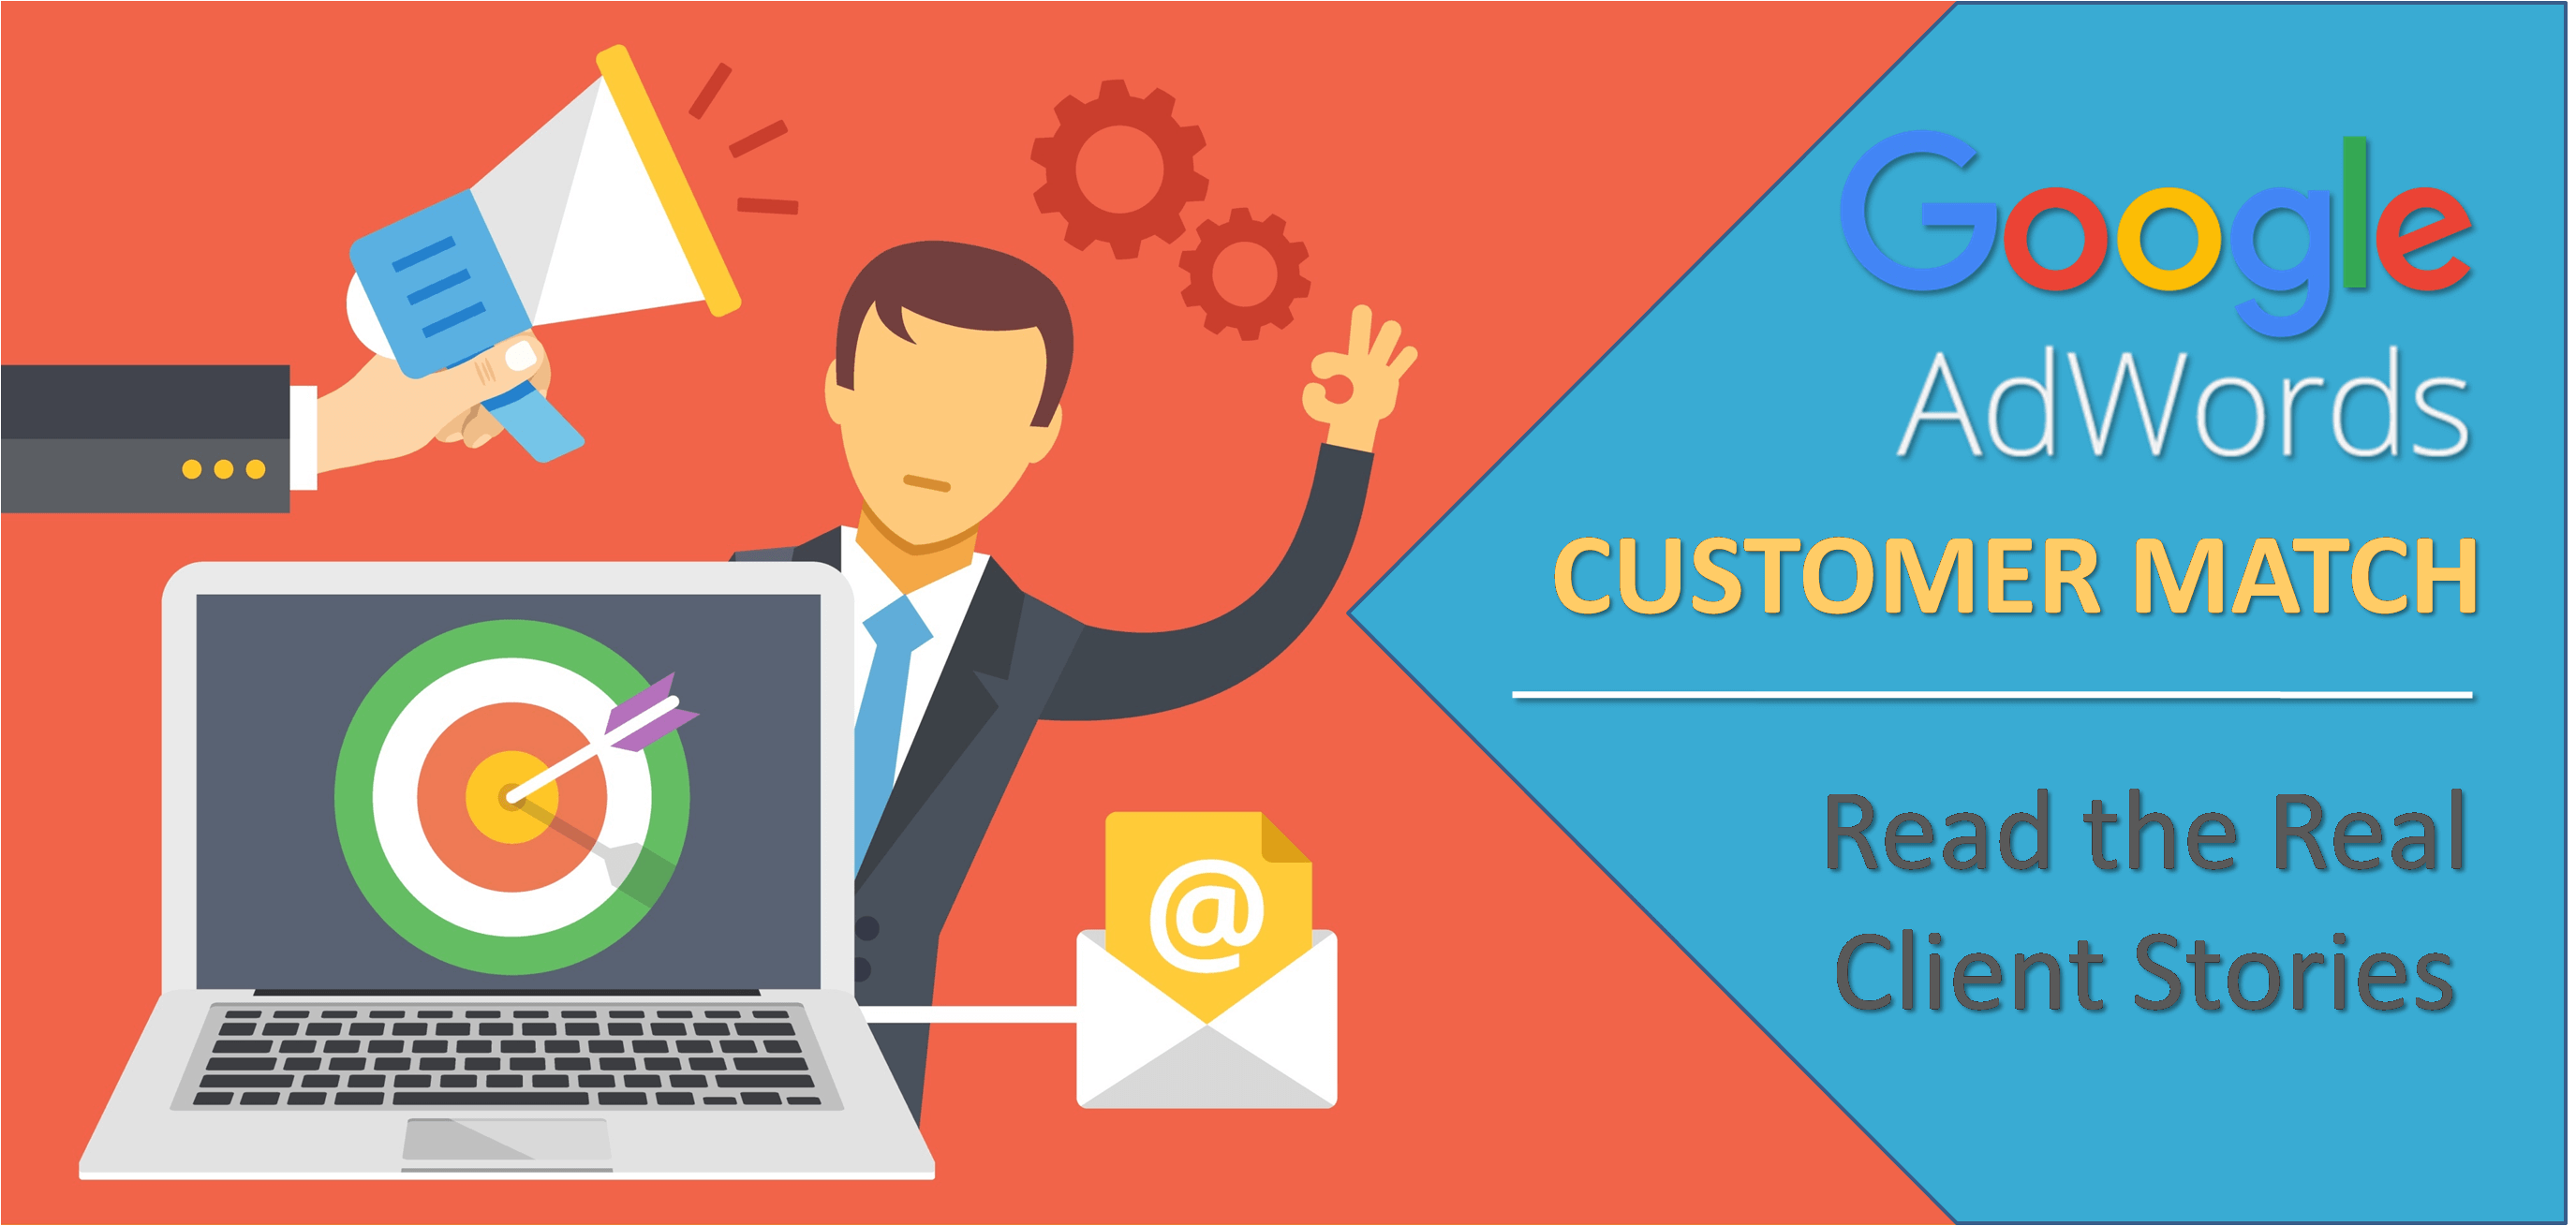 Google Adwords Customer Match Client Stories